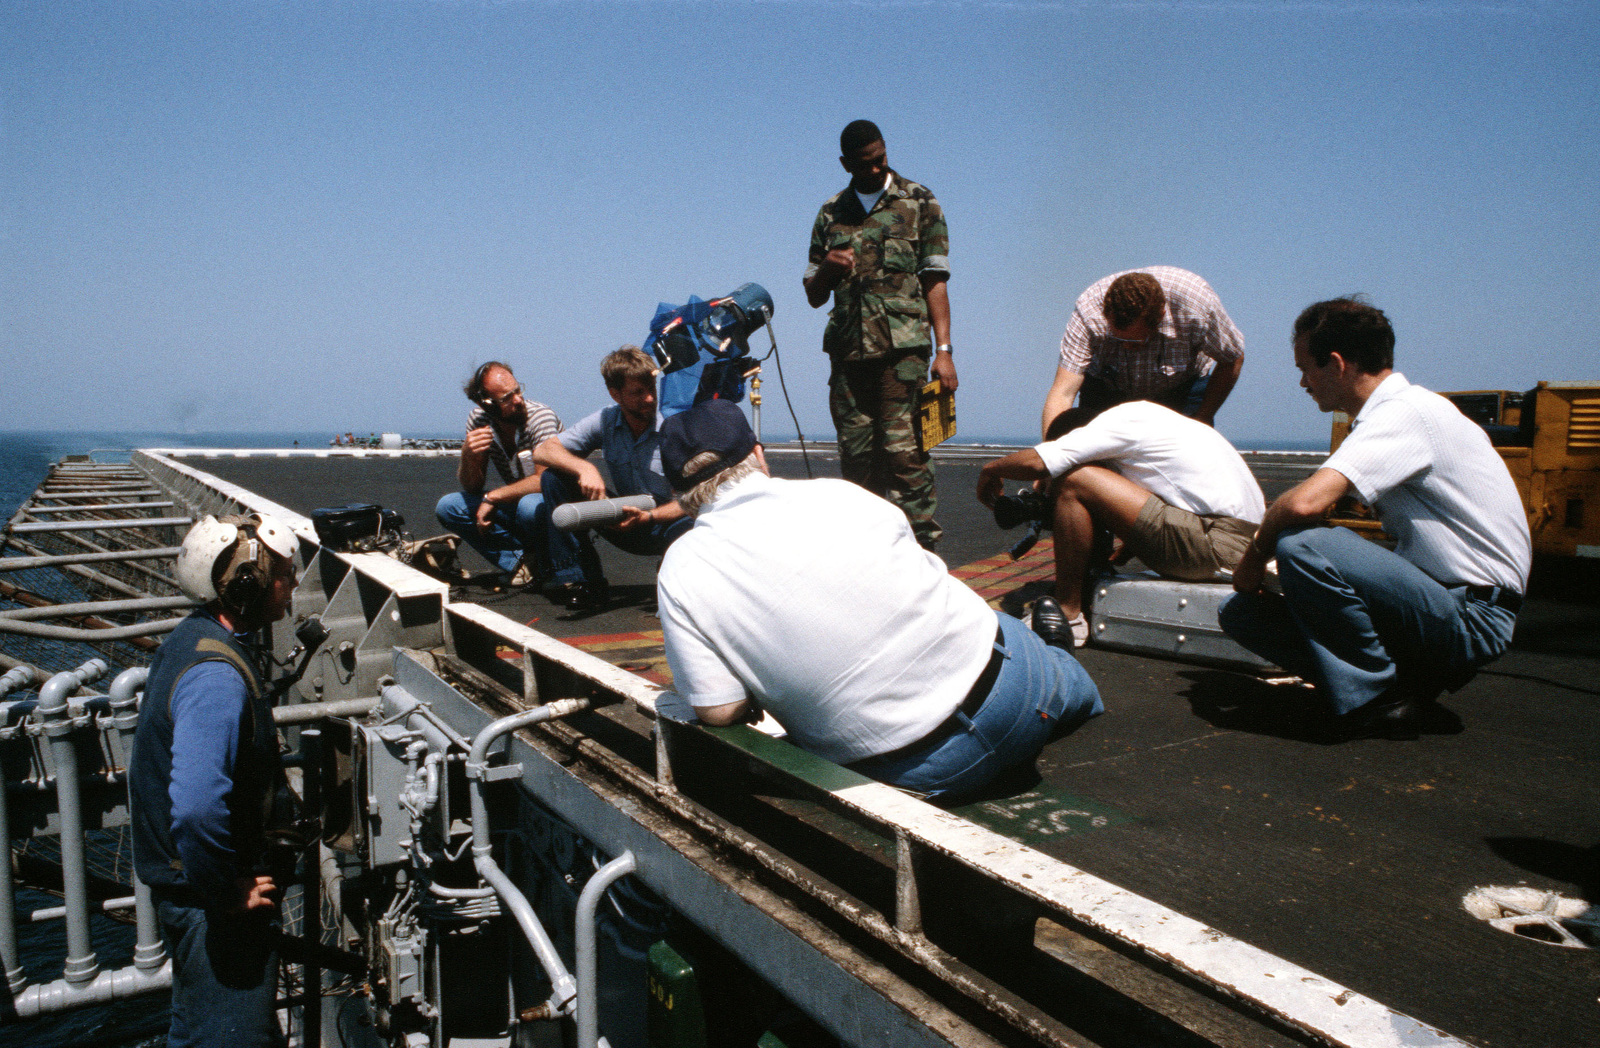 An elevator operator aboard the aircraft carrier USS JOHN F. KENNEDY (CV 67) watches as a motion picture crew from the Naval Audiovisual Center corrects a camera malfunction